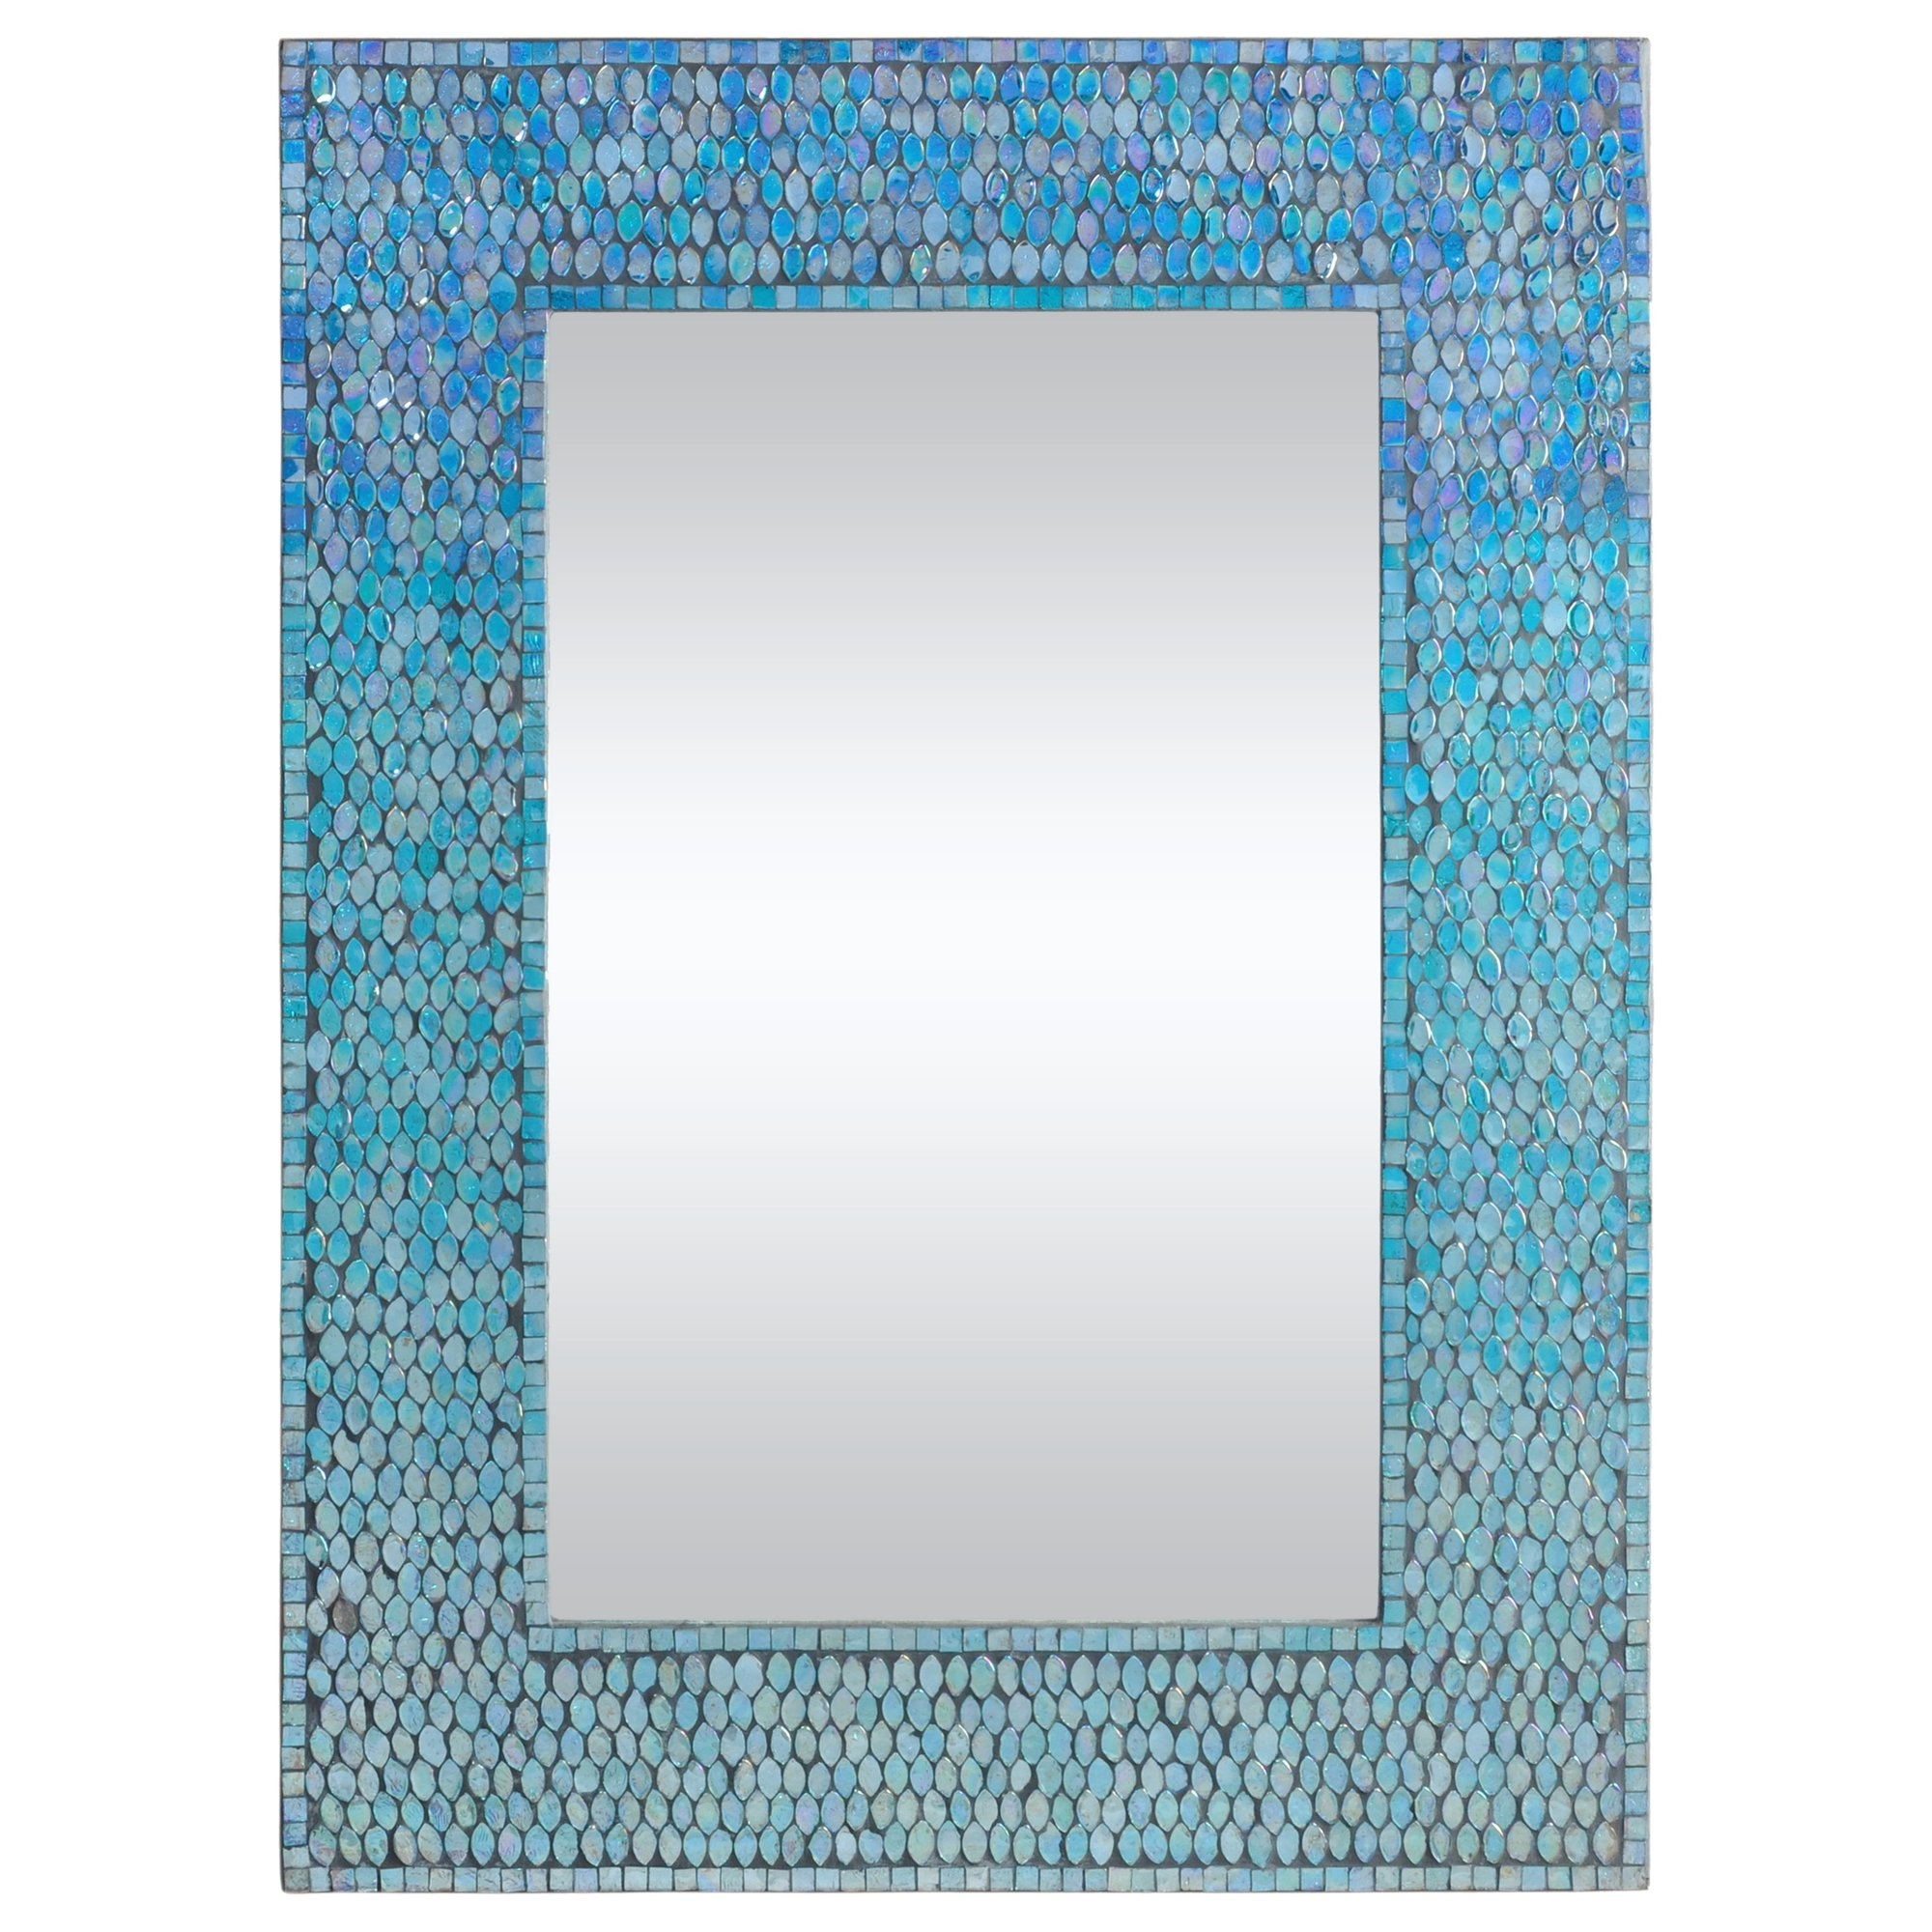 Ren Wil Catarina Accent Wall Mirror Reviews Wayfair Within Mirror With Blue Frame (Image 10 of 15)